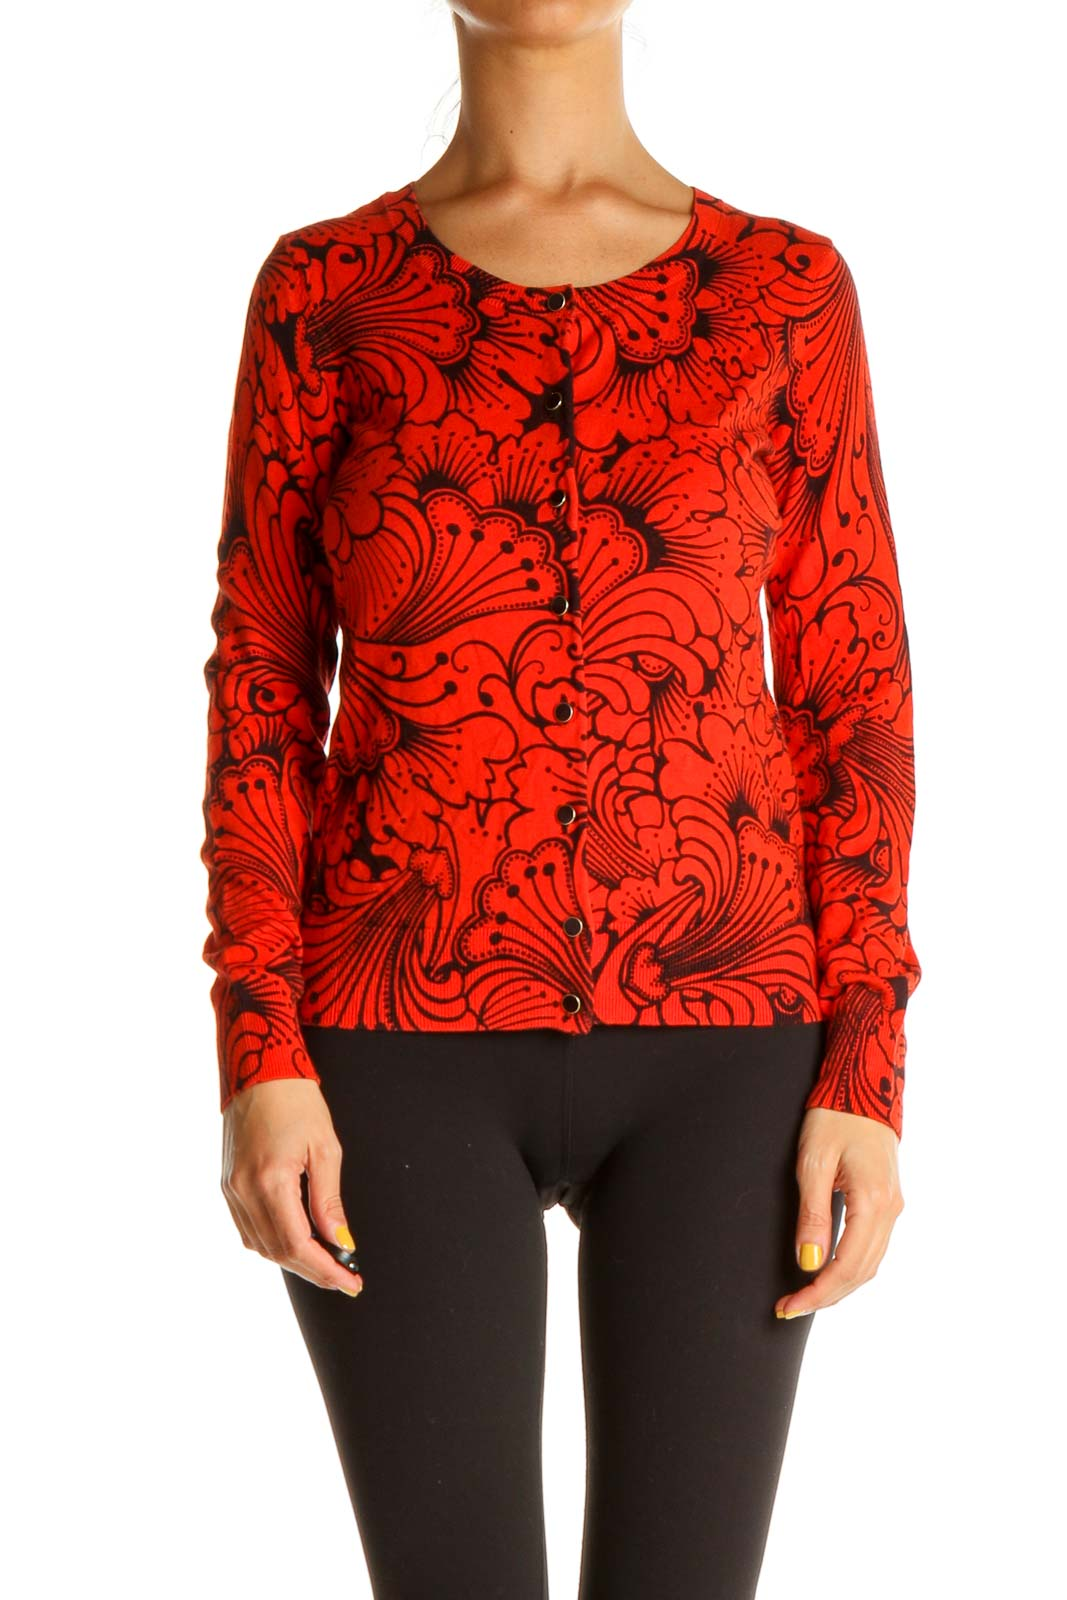 Red Tropical Print Retro Sweater Front